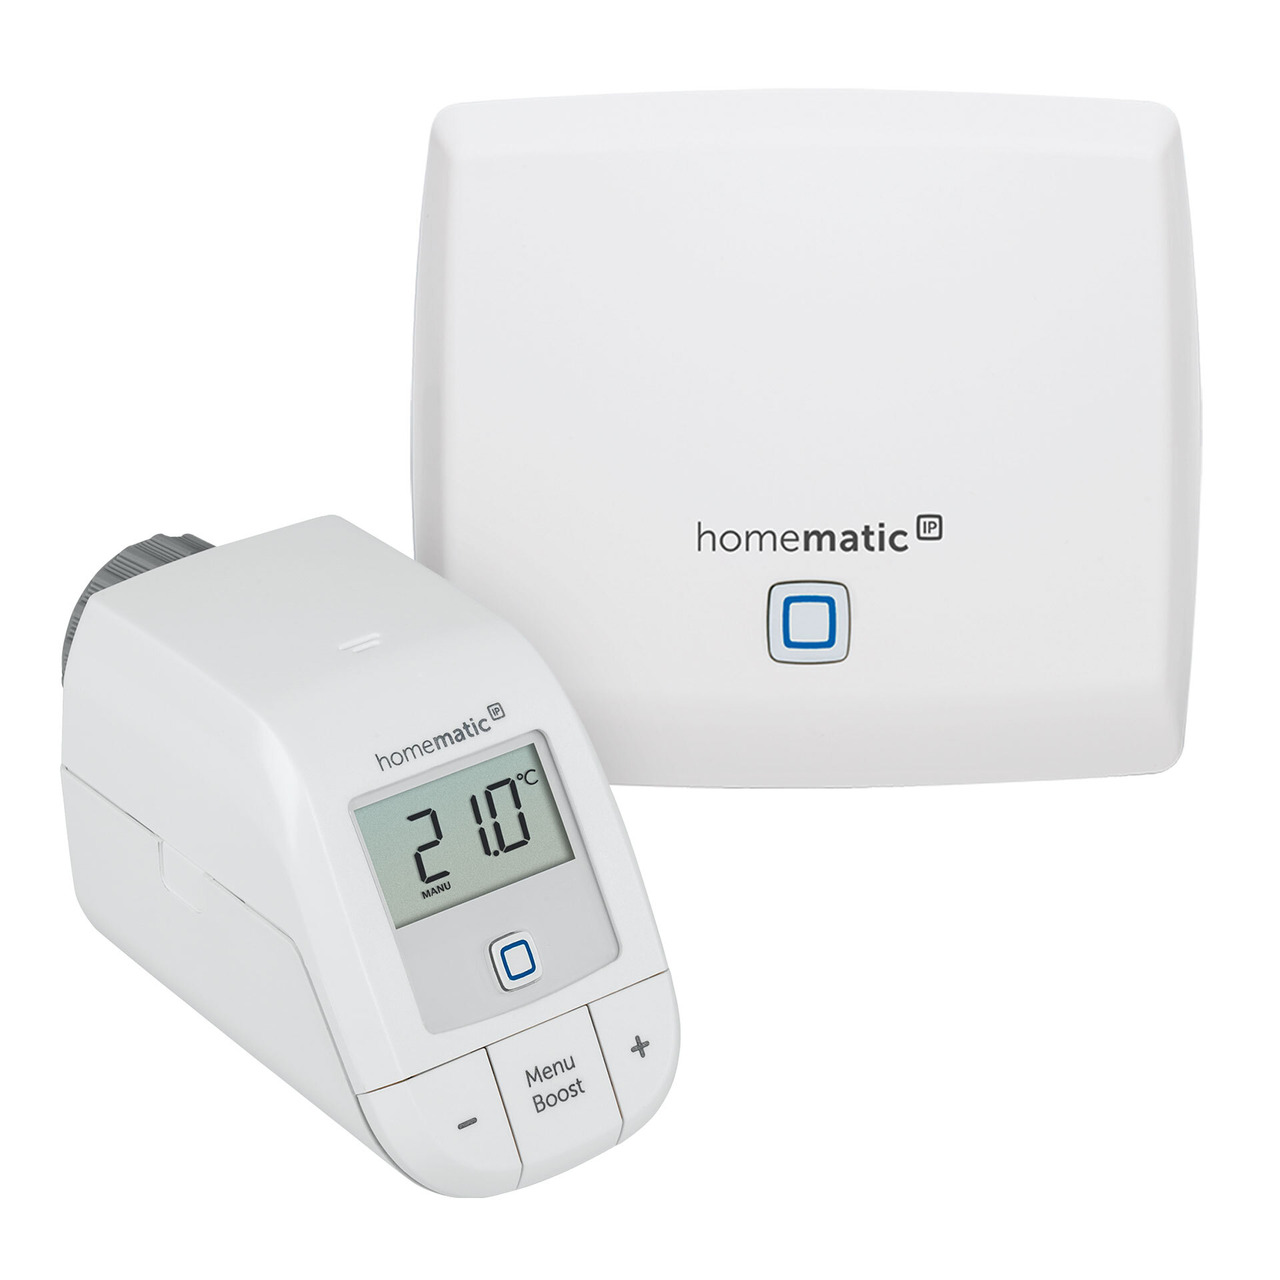 Homematic IP Starter Set Heizen Basic mit Access Point und Heizkörperthermostat basic